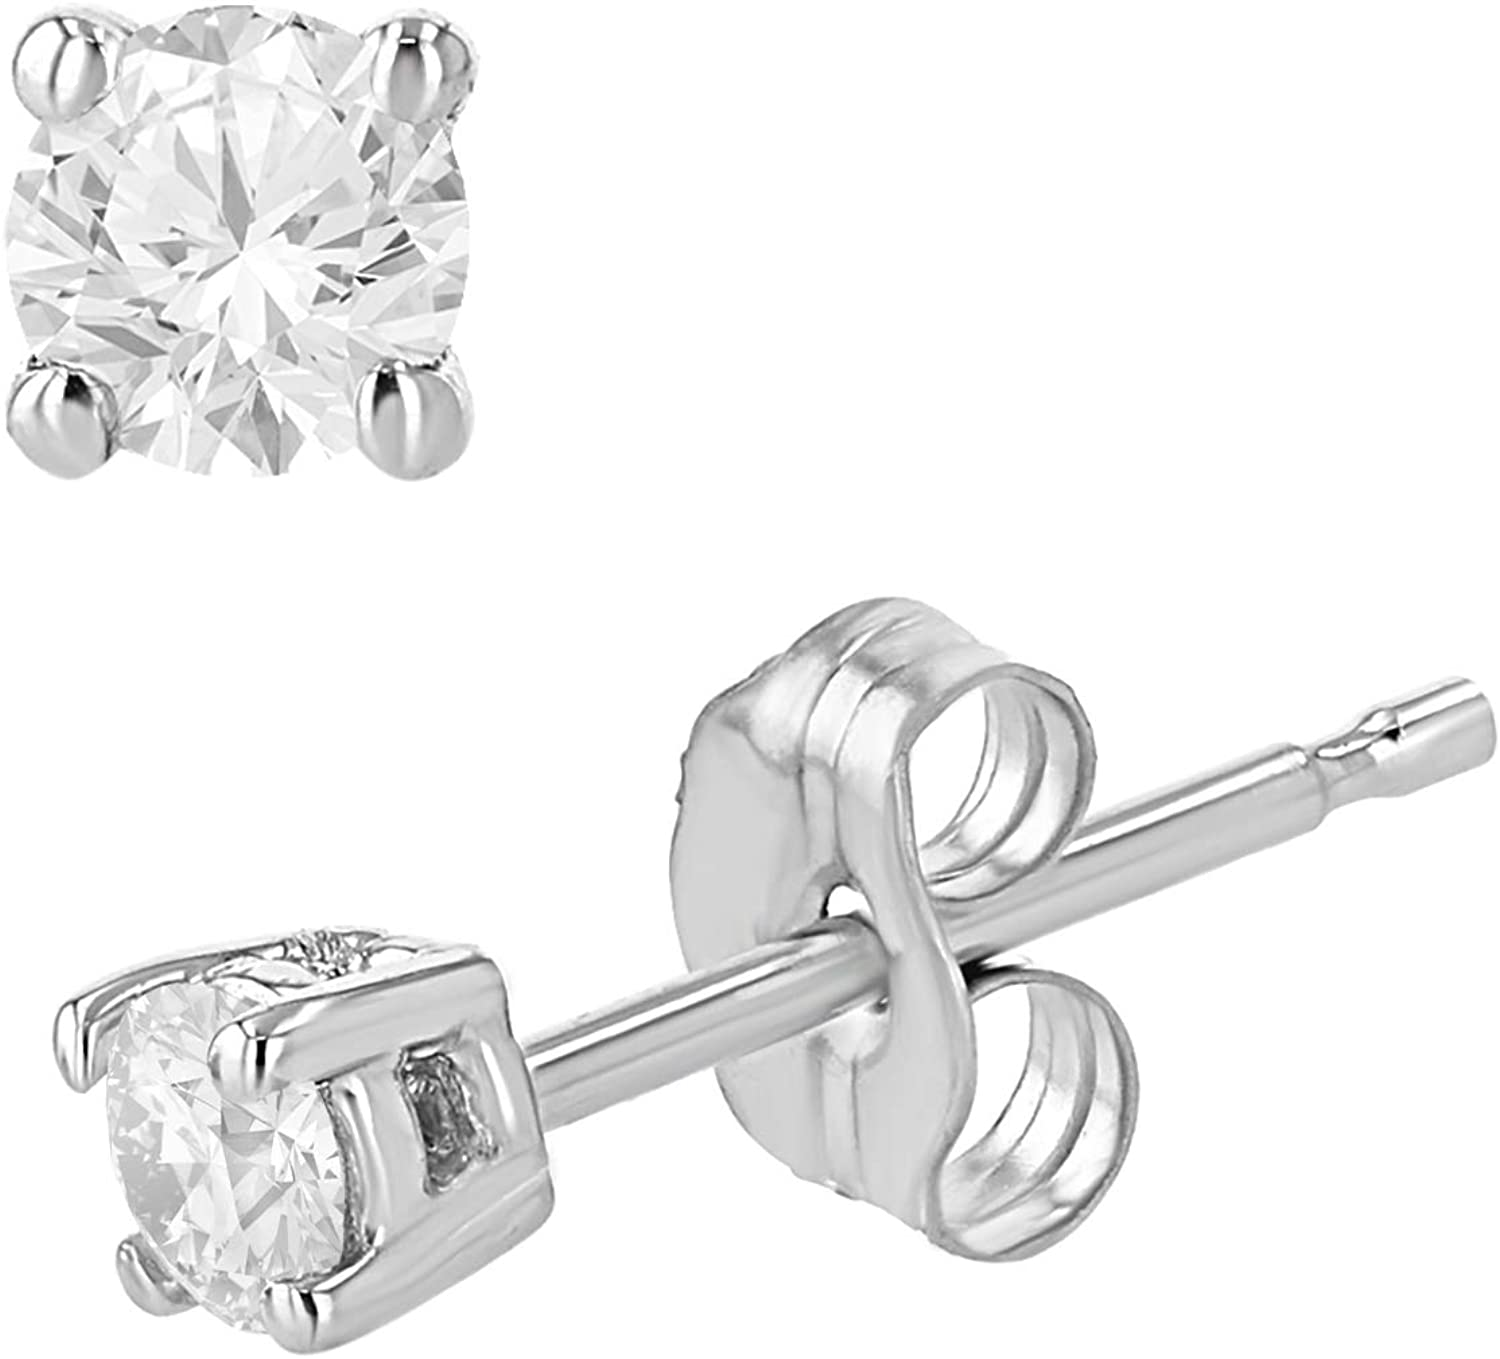 0.15 Carat Total Weight Round Diamond in for Women Stud Earrings Over item handling sale ☆